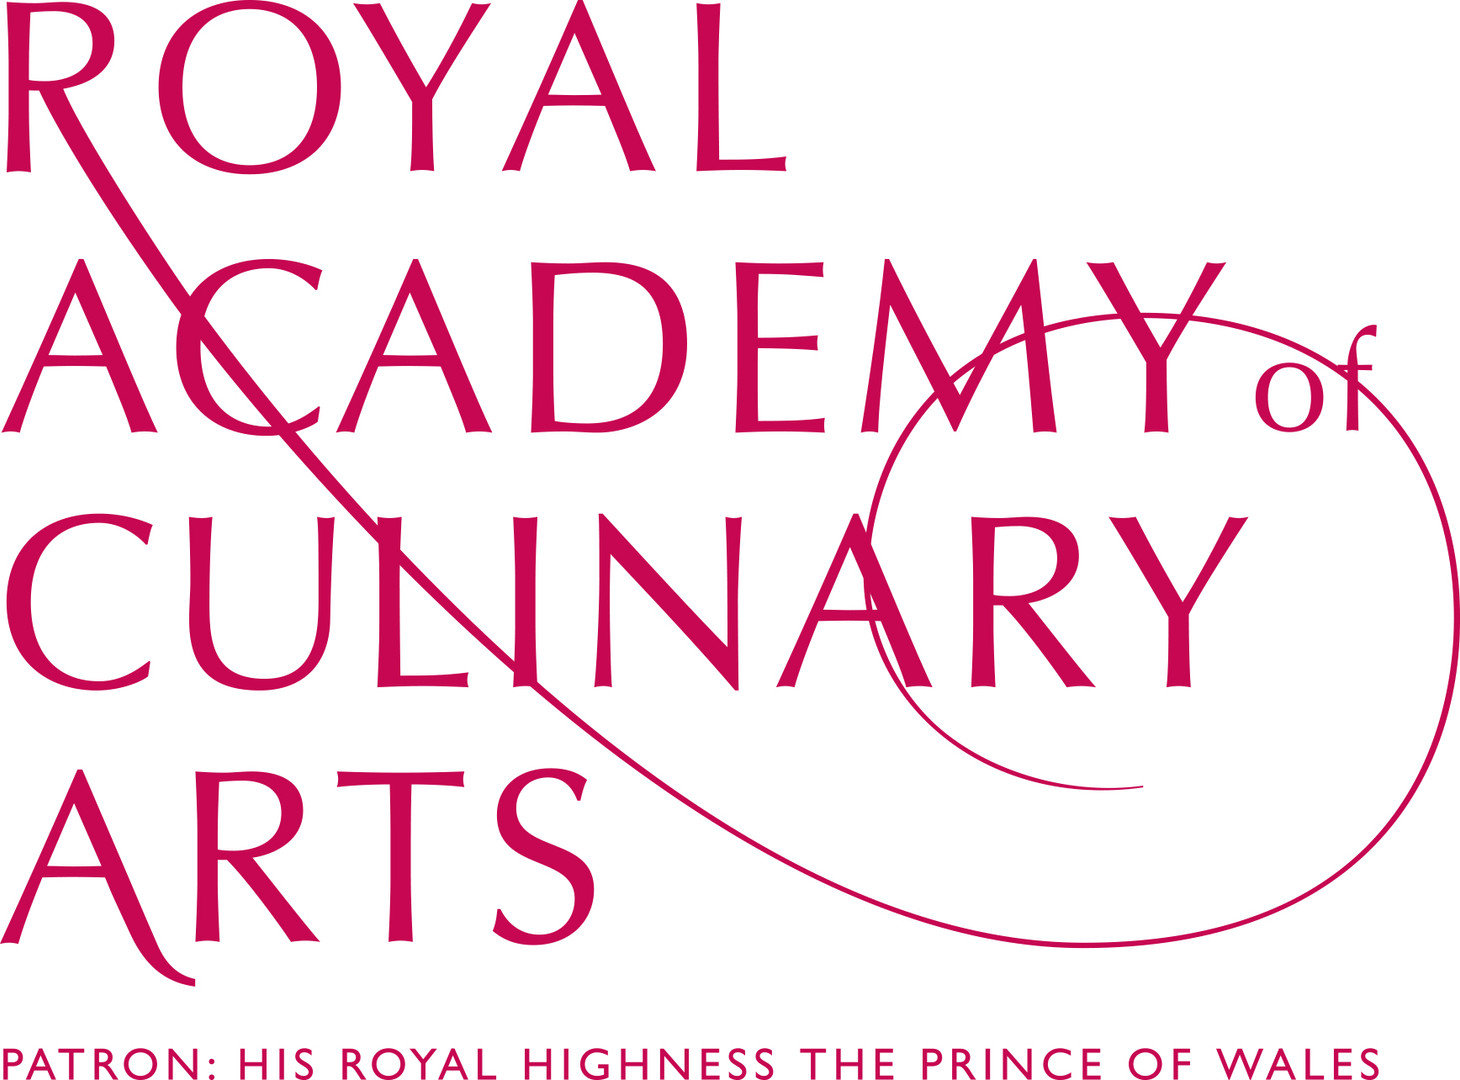 Royal Academy of Culinary Arts